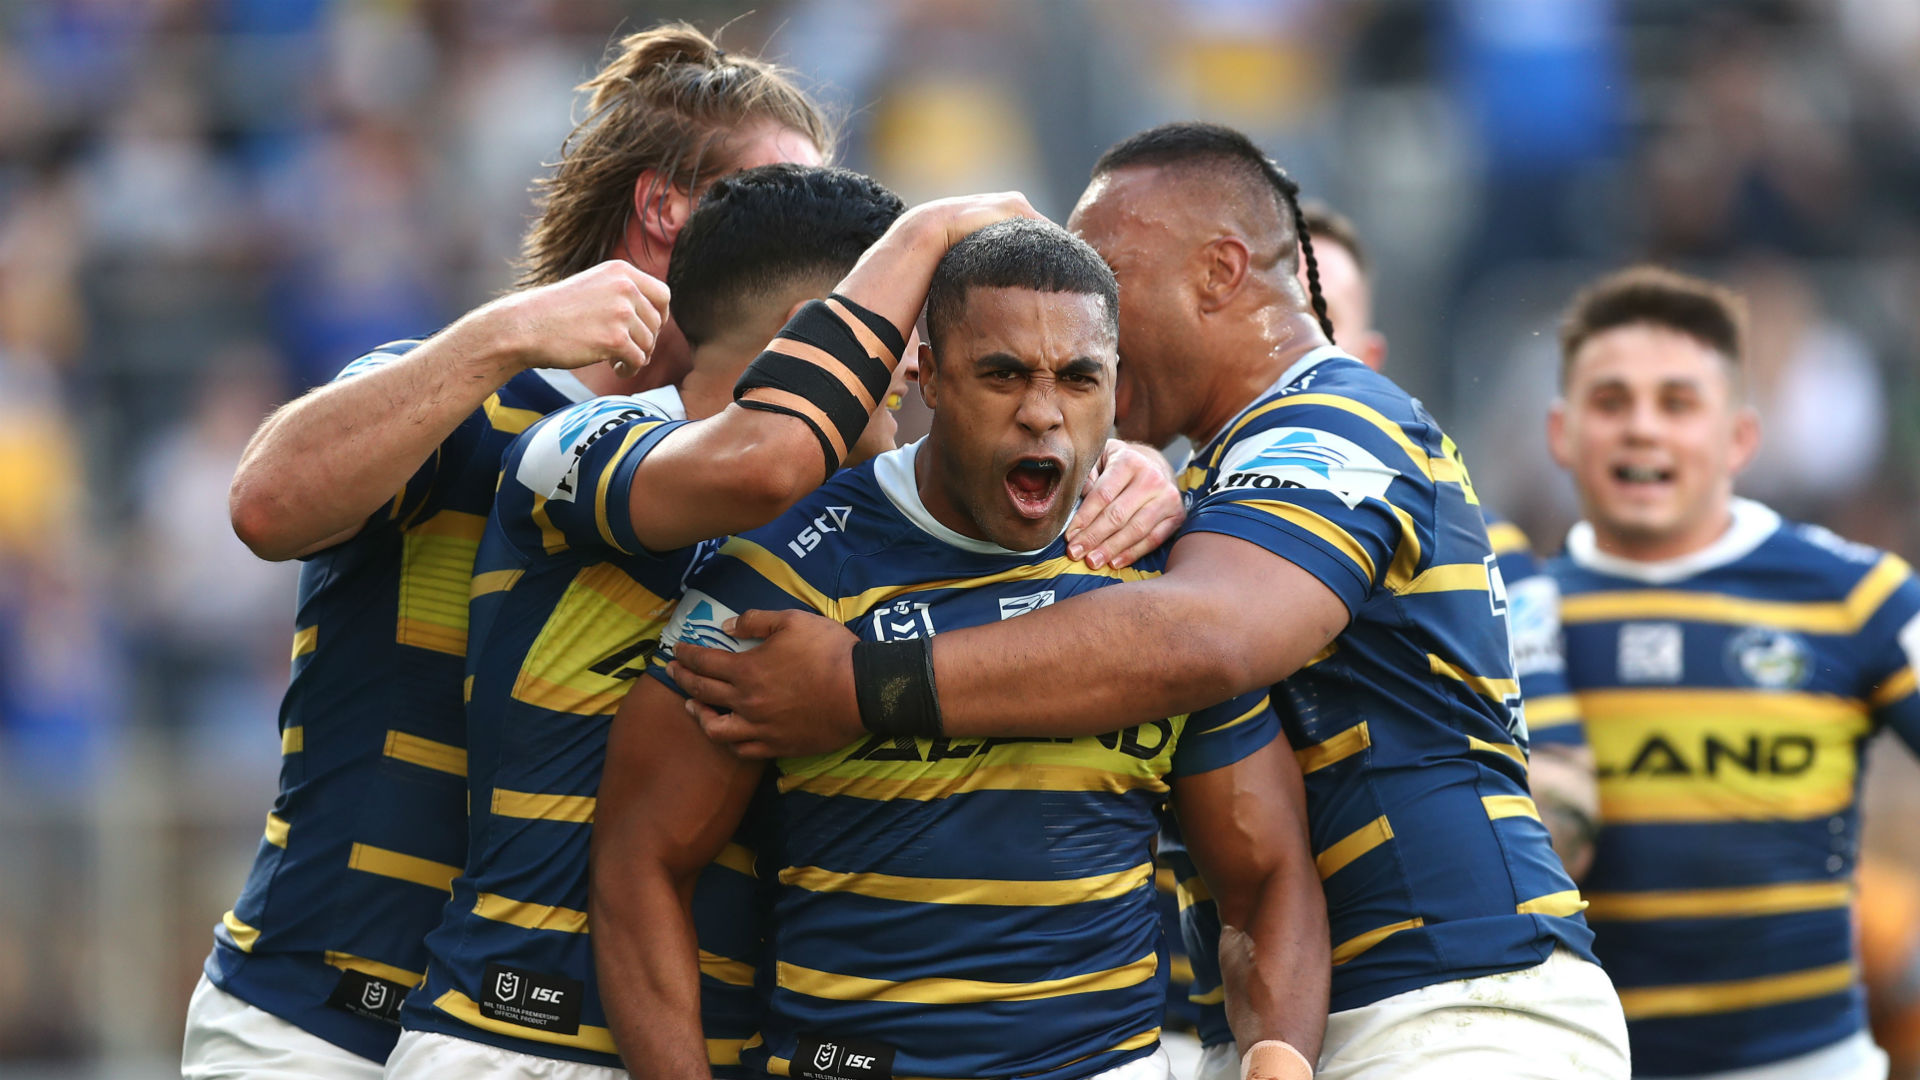 Brisbane Broncos' season ended with a whimper at Bankwest Stadium, where Parramatta Eels ran in an astonishing 11 tries to stay alive.